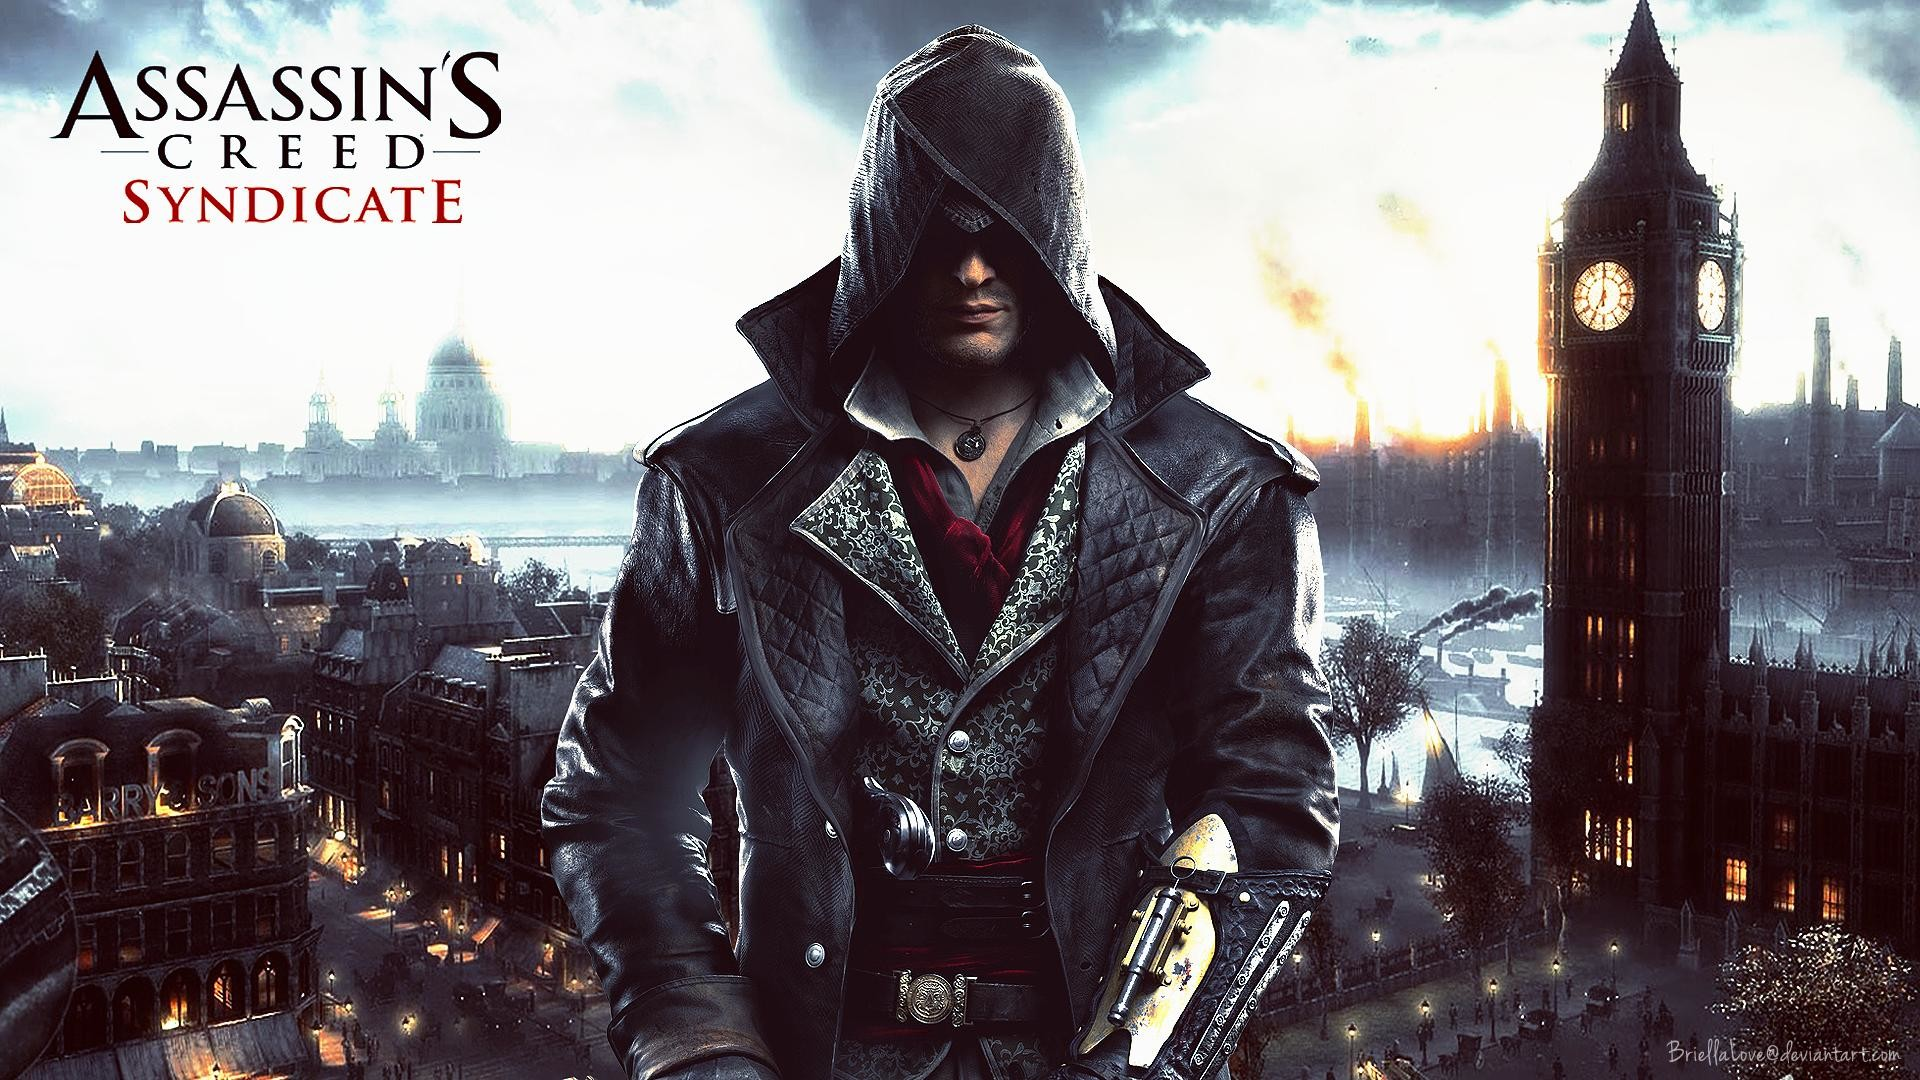 Assassin-s-Creed-Syndicate-HD-by-BriellaLove.deviantart.